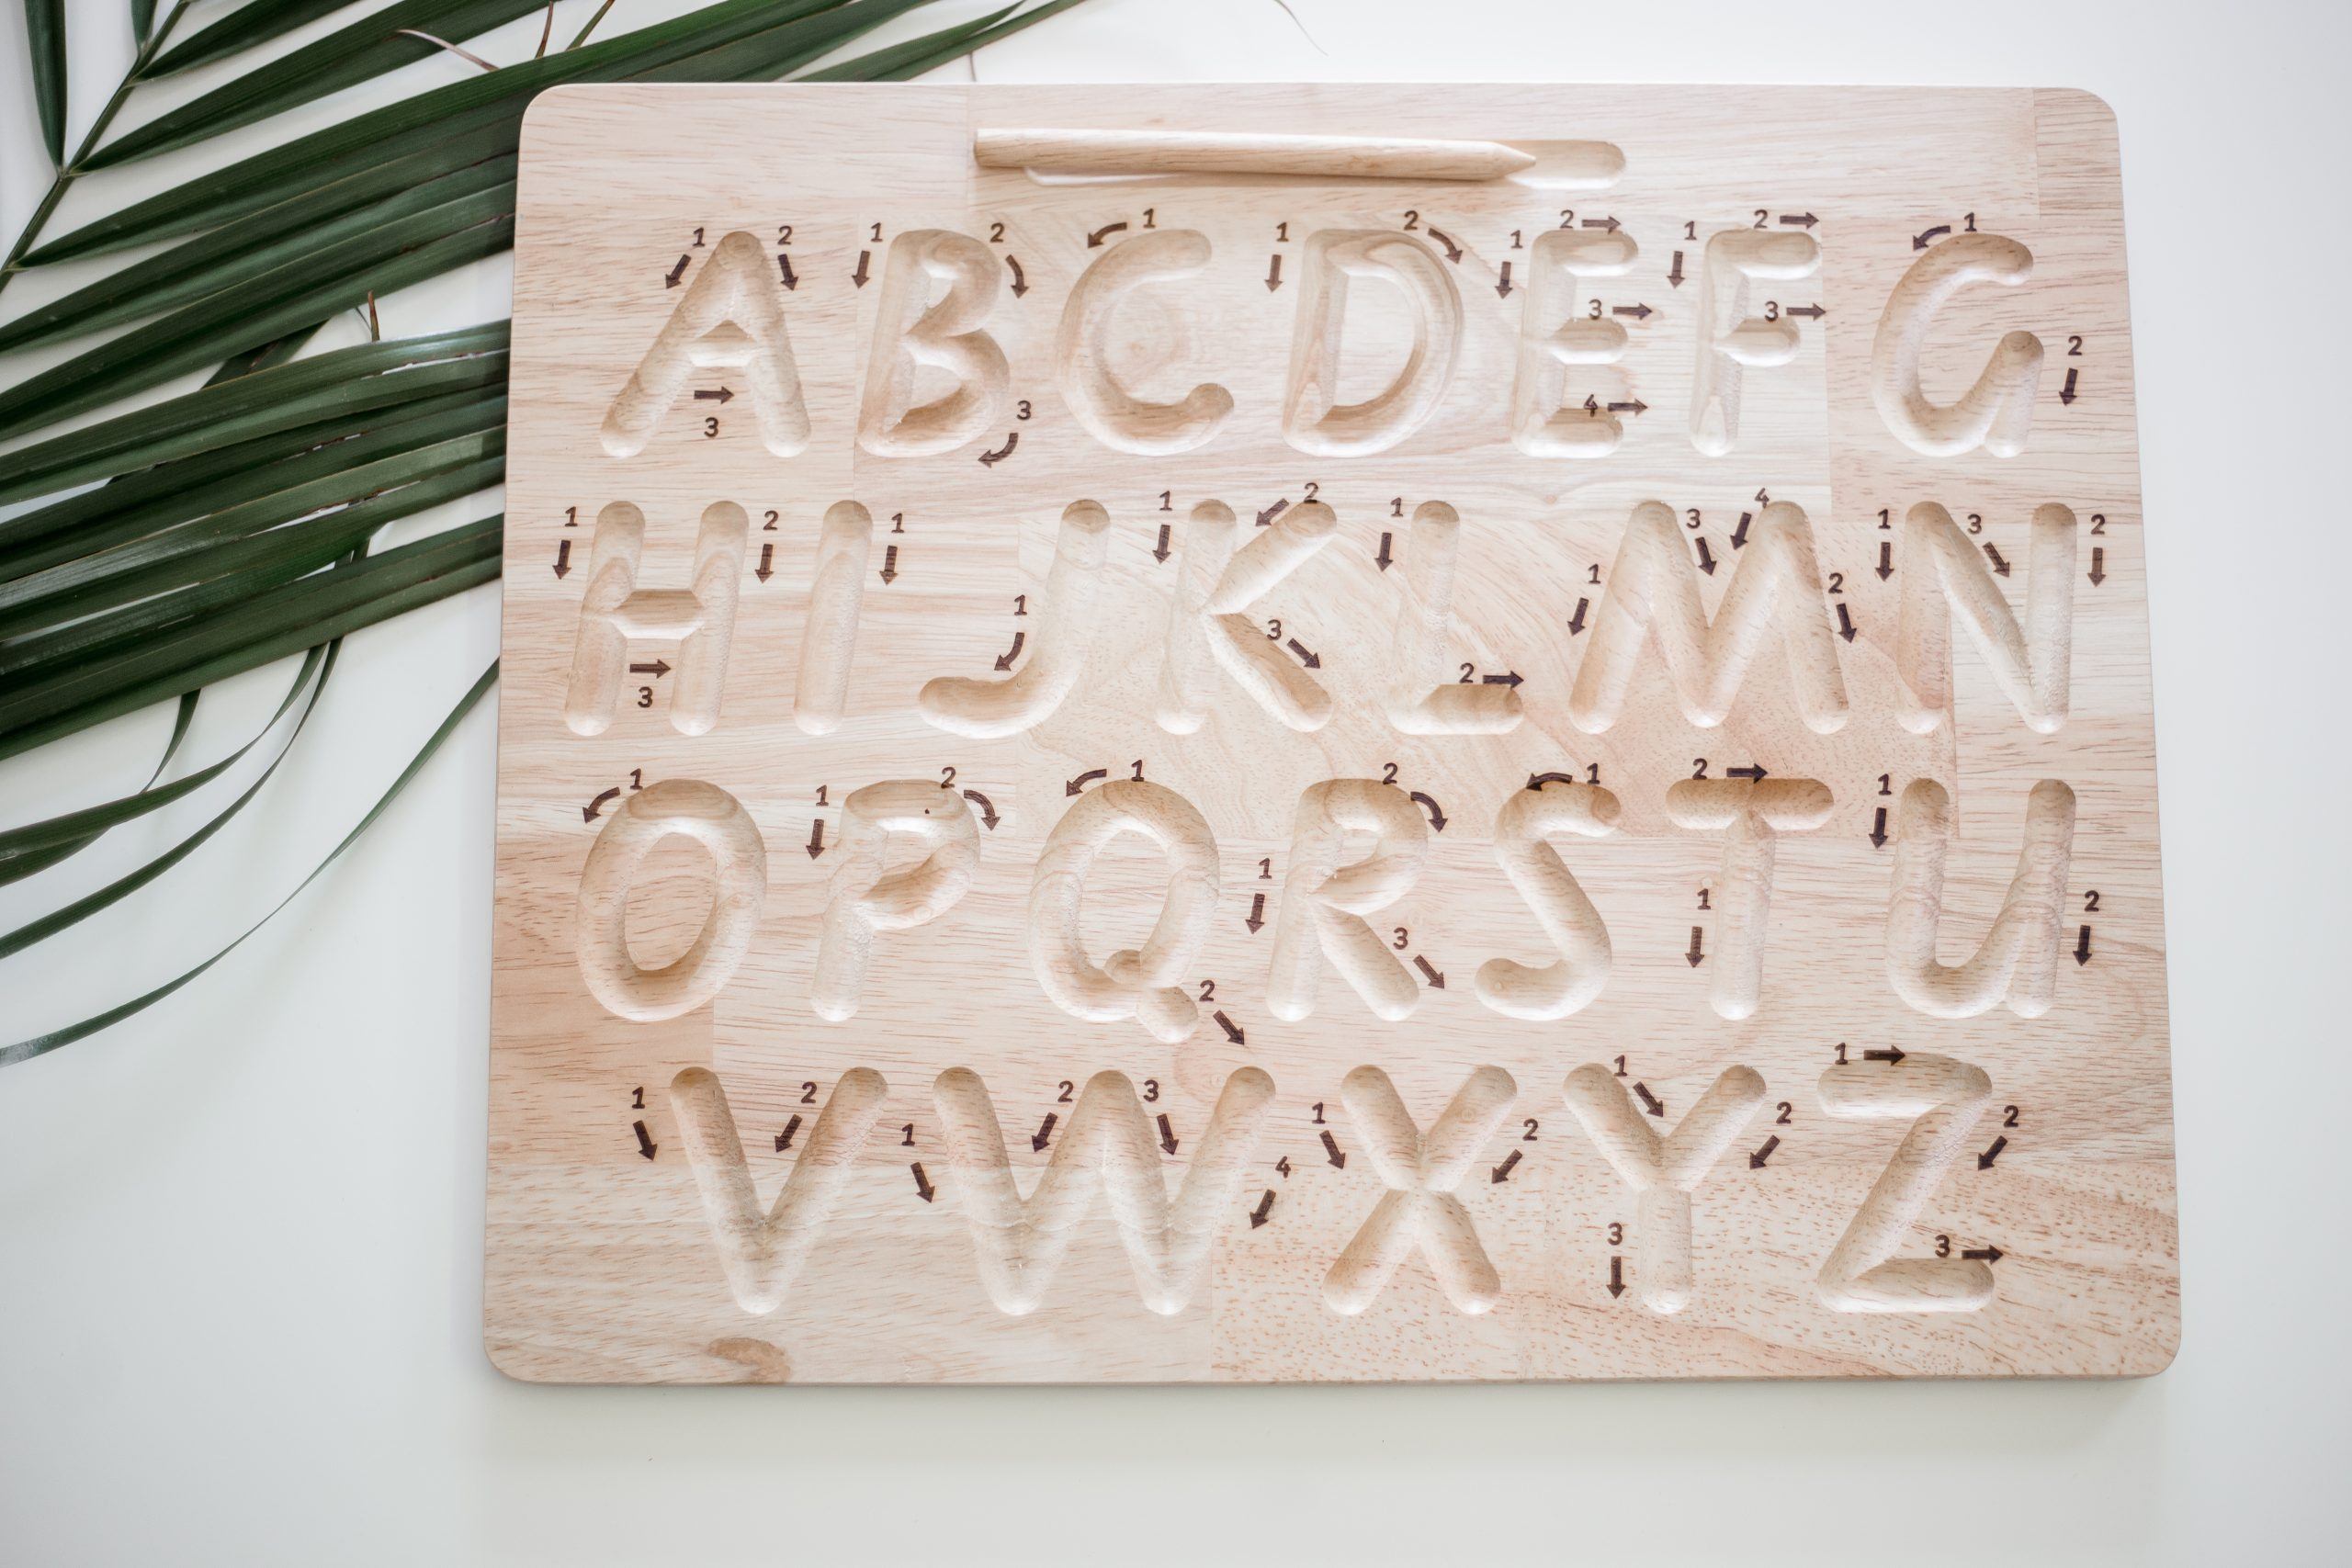 Capital Letter Tracing Board pertaining to Alphabet Tracing Board